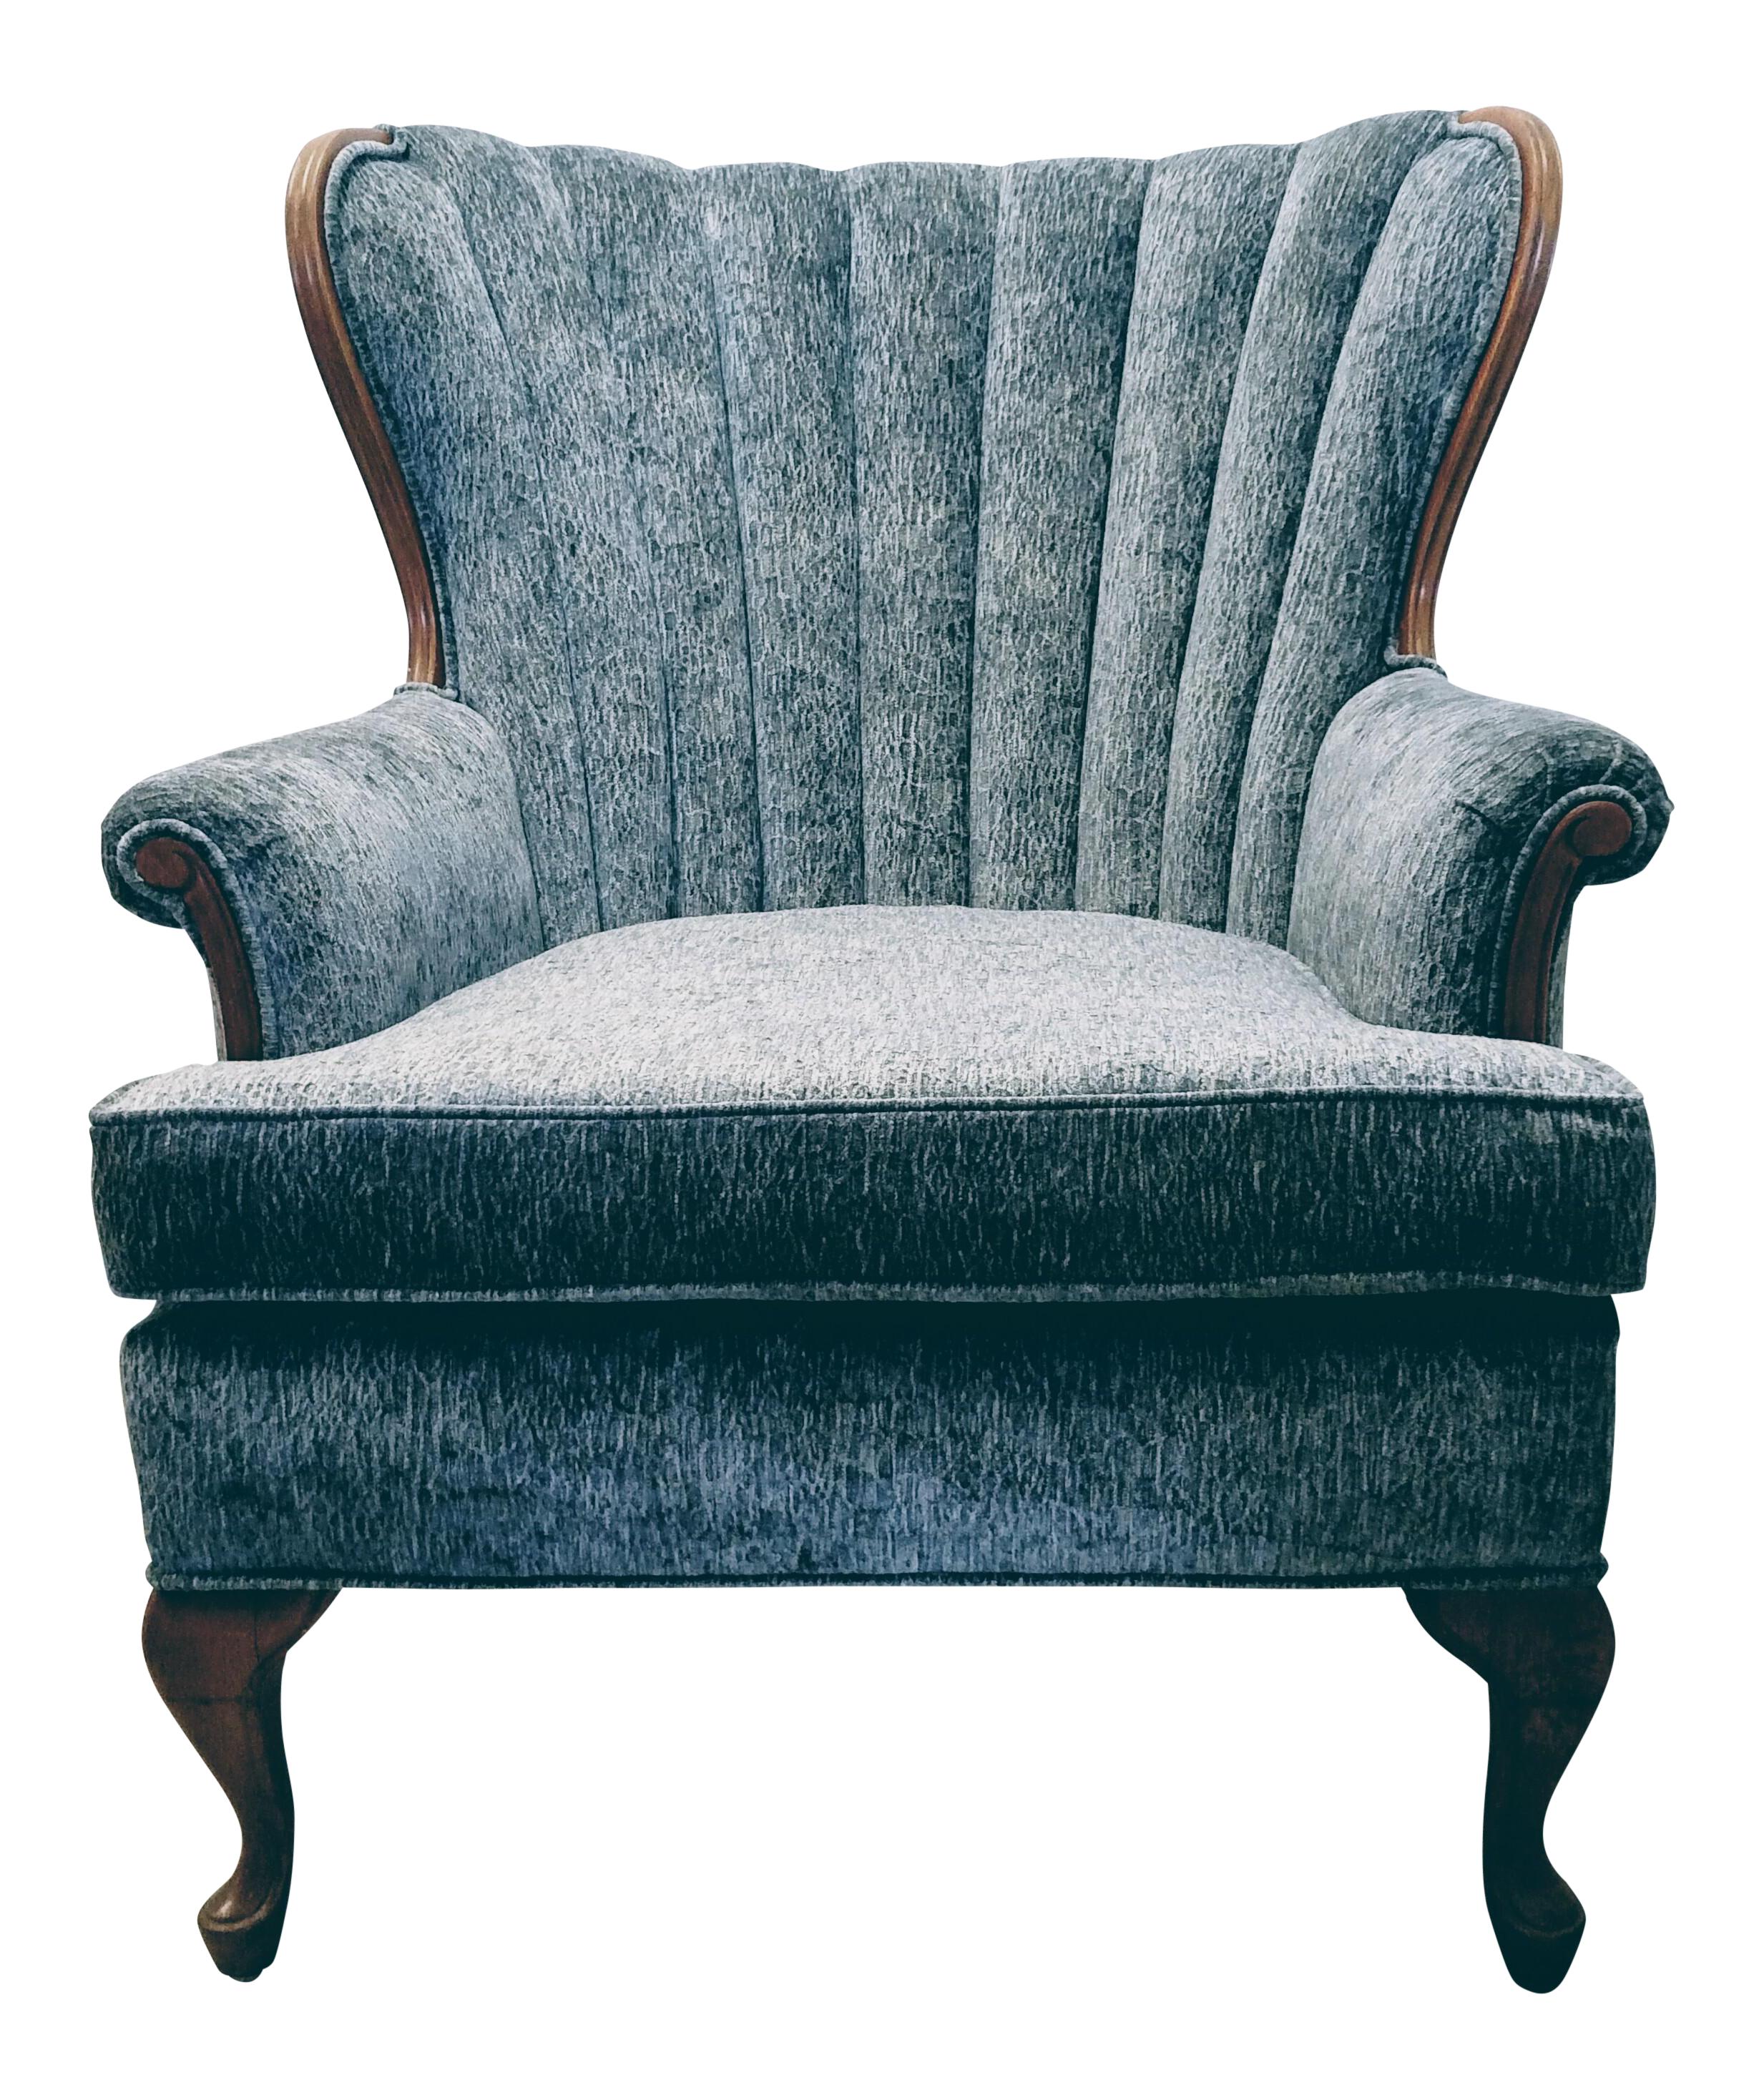 Vintage Channel Back Chair With Wood Trim | Chairish